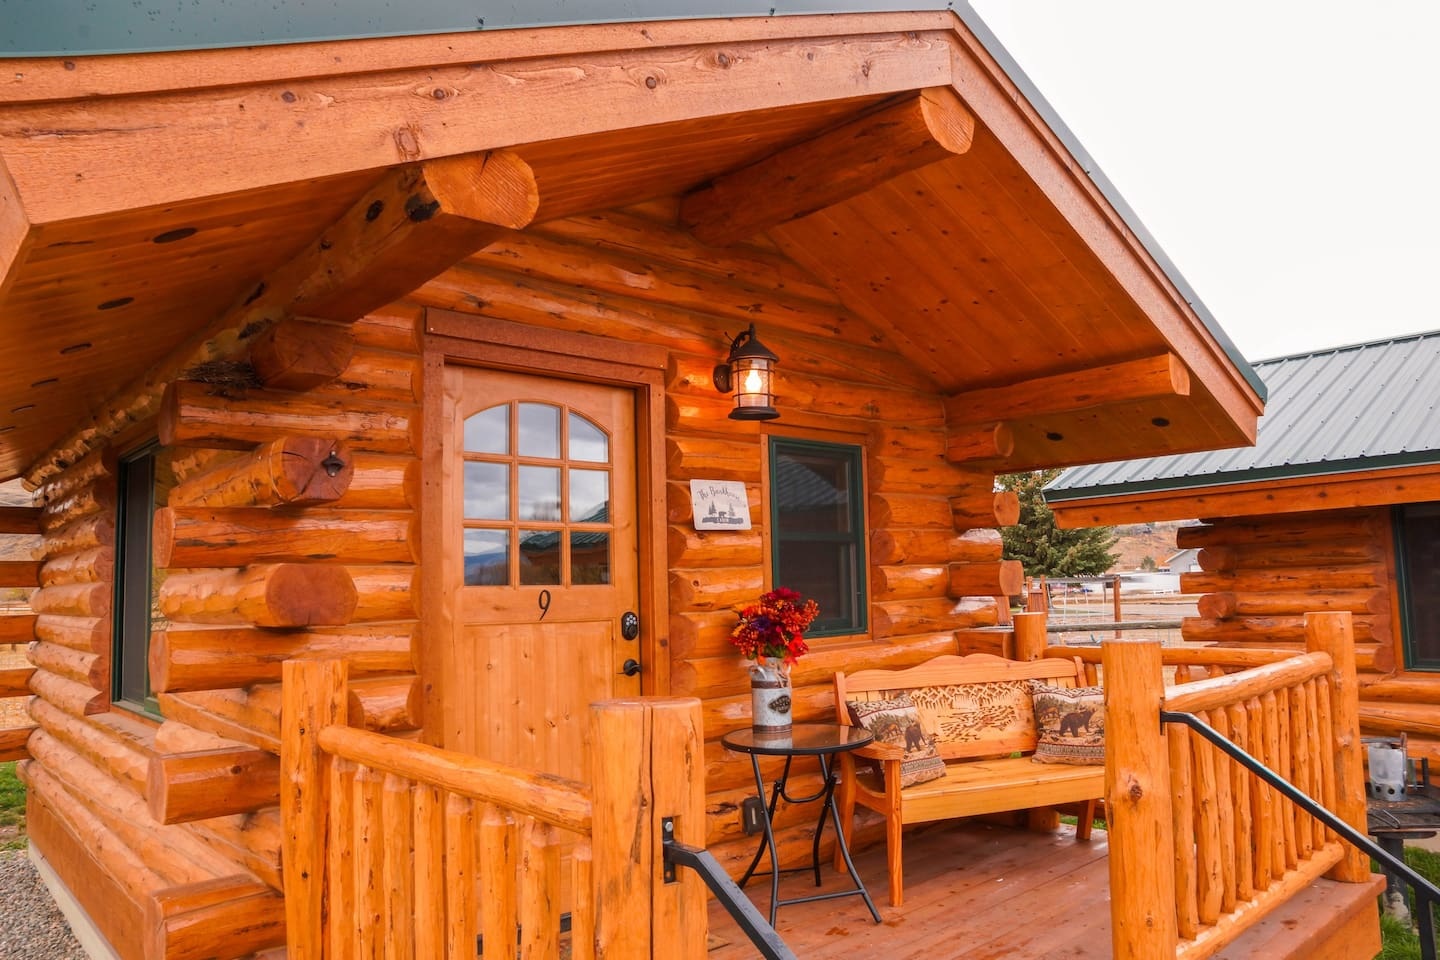 The Bunkhouse Cabin is a cozy 12 x 16 foot custom log cabin, and offers a beautiful, sturdy bunk bed, with a comfortable twin bunk, over a  full-size futon (coil spring mattress) which makes out to a full-size bed.